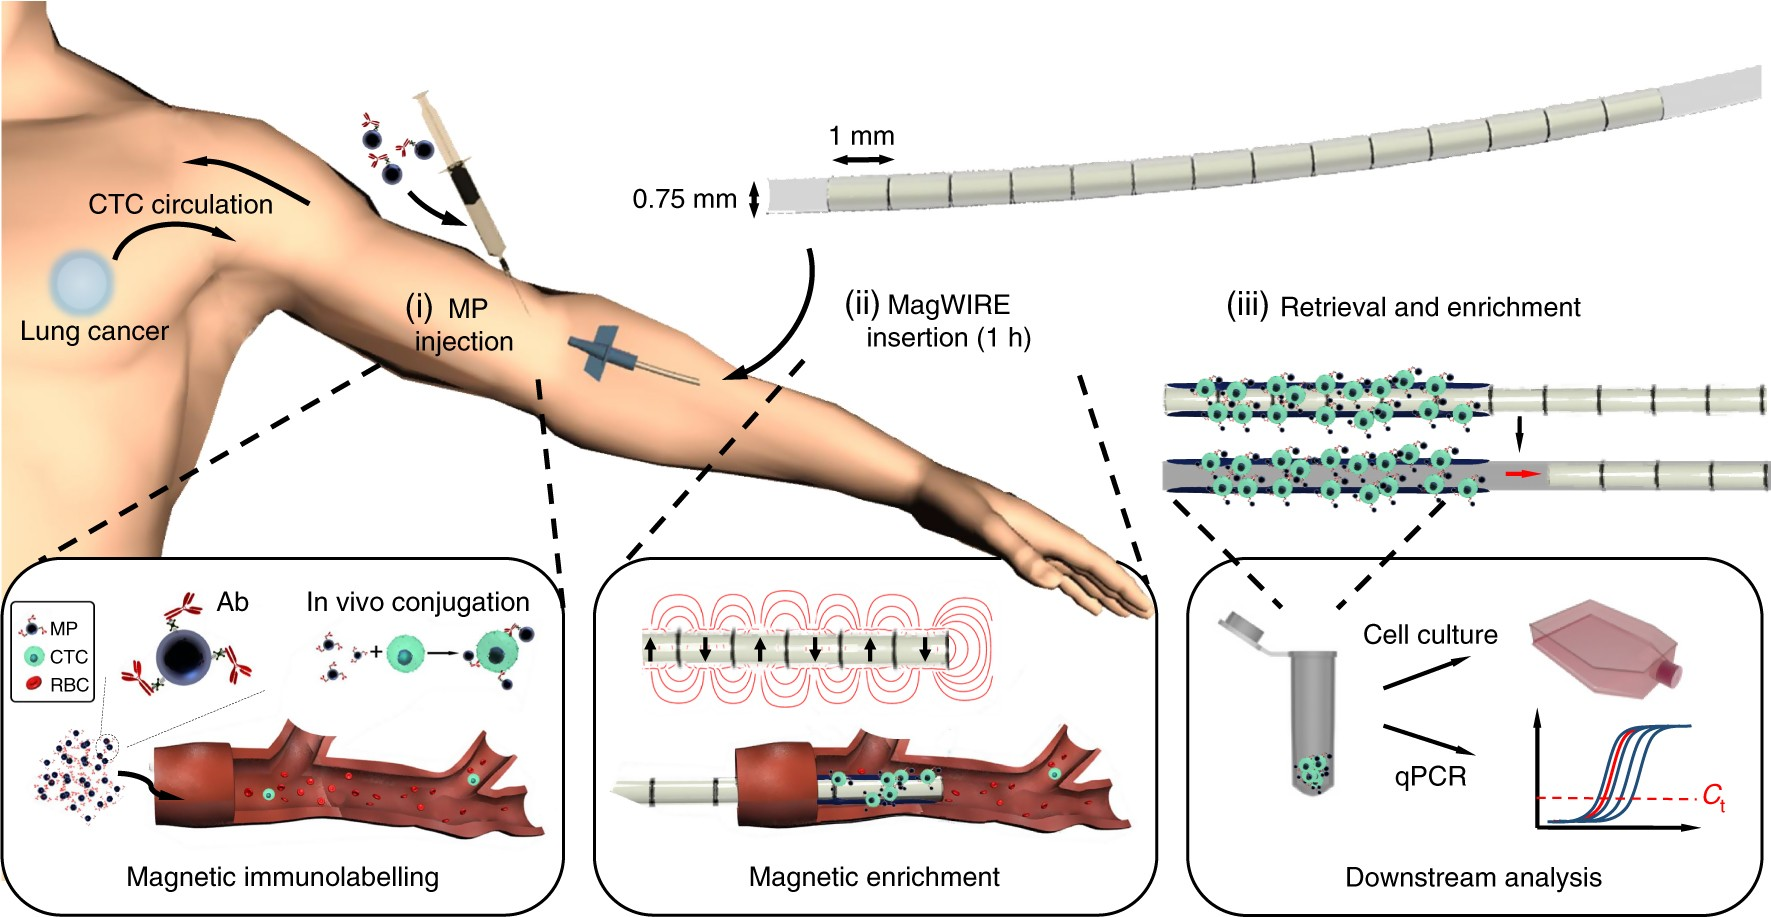 An Intravascular Magnetic Wire For The High Throughput Retrieval Of Vortex Flex Resources All About Flexible Circuits Circulating Tumour Cells In Vivo Nature Biomedical Engineering